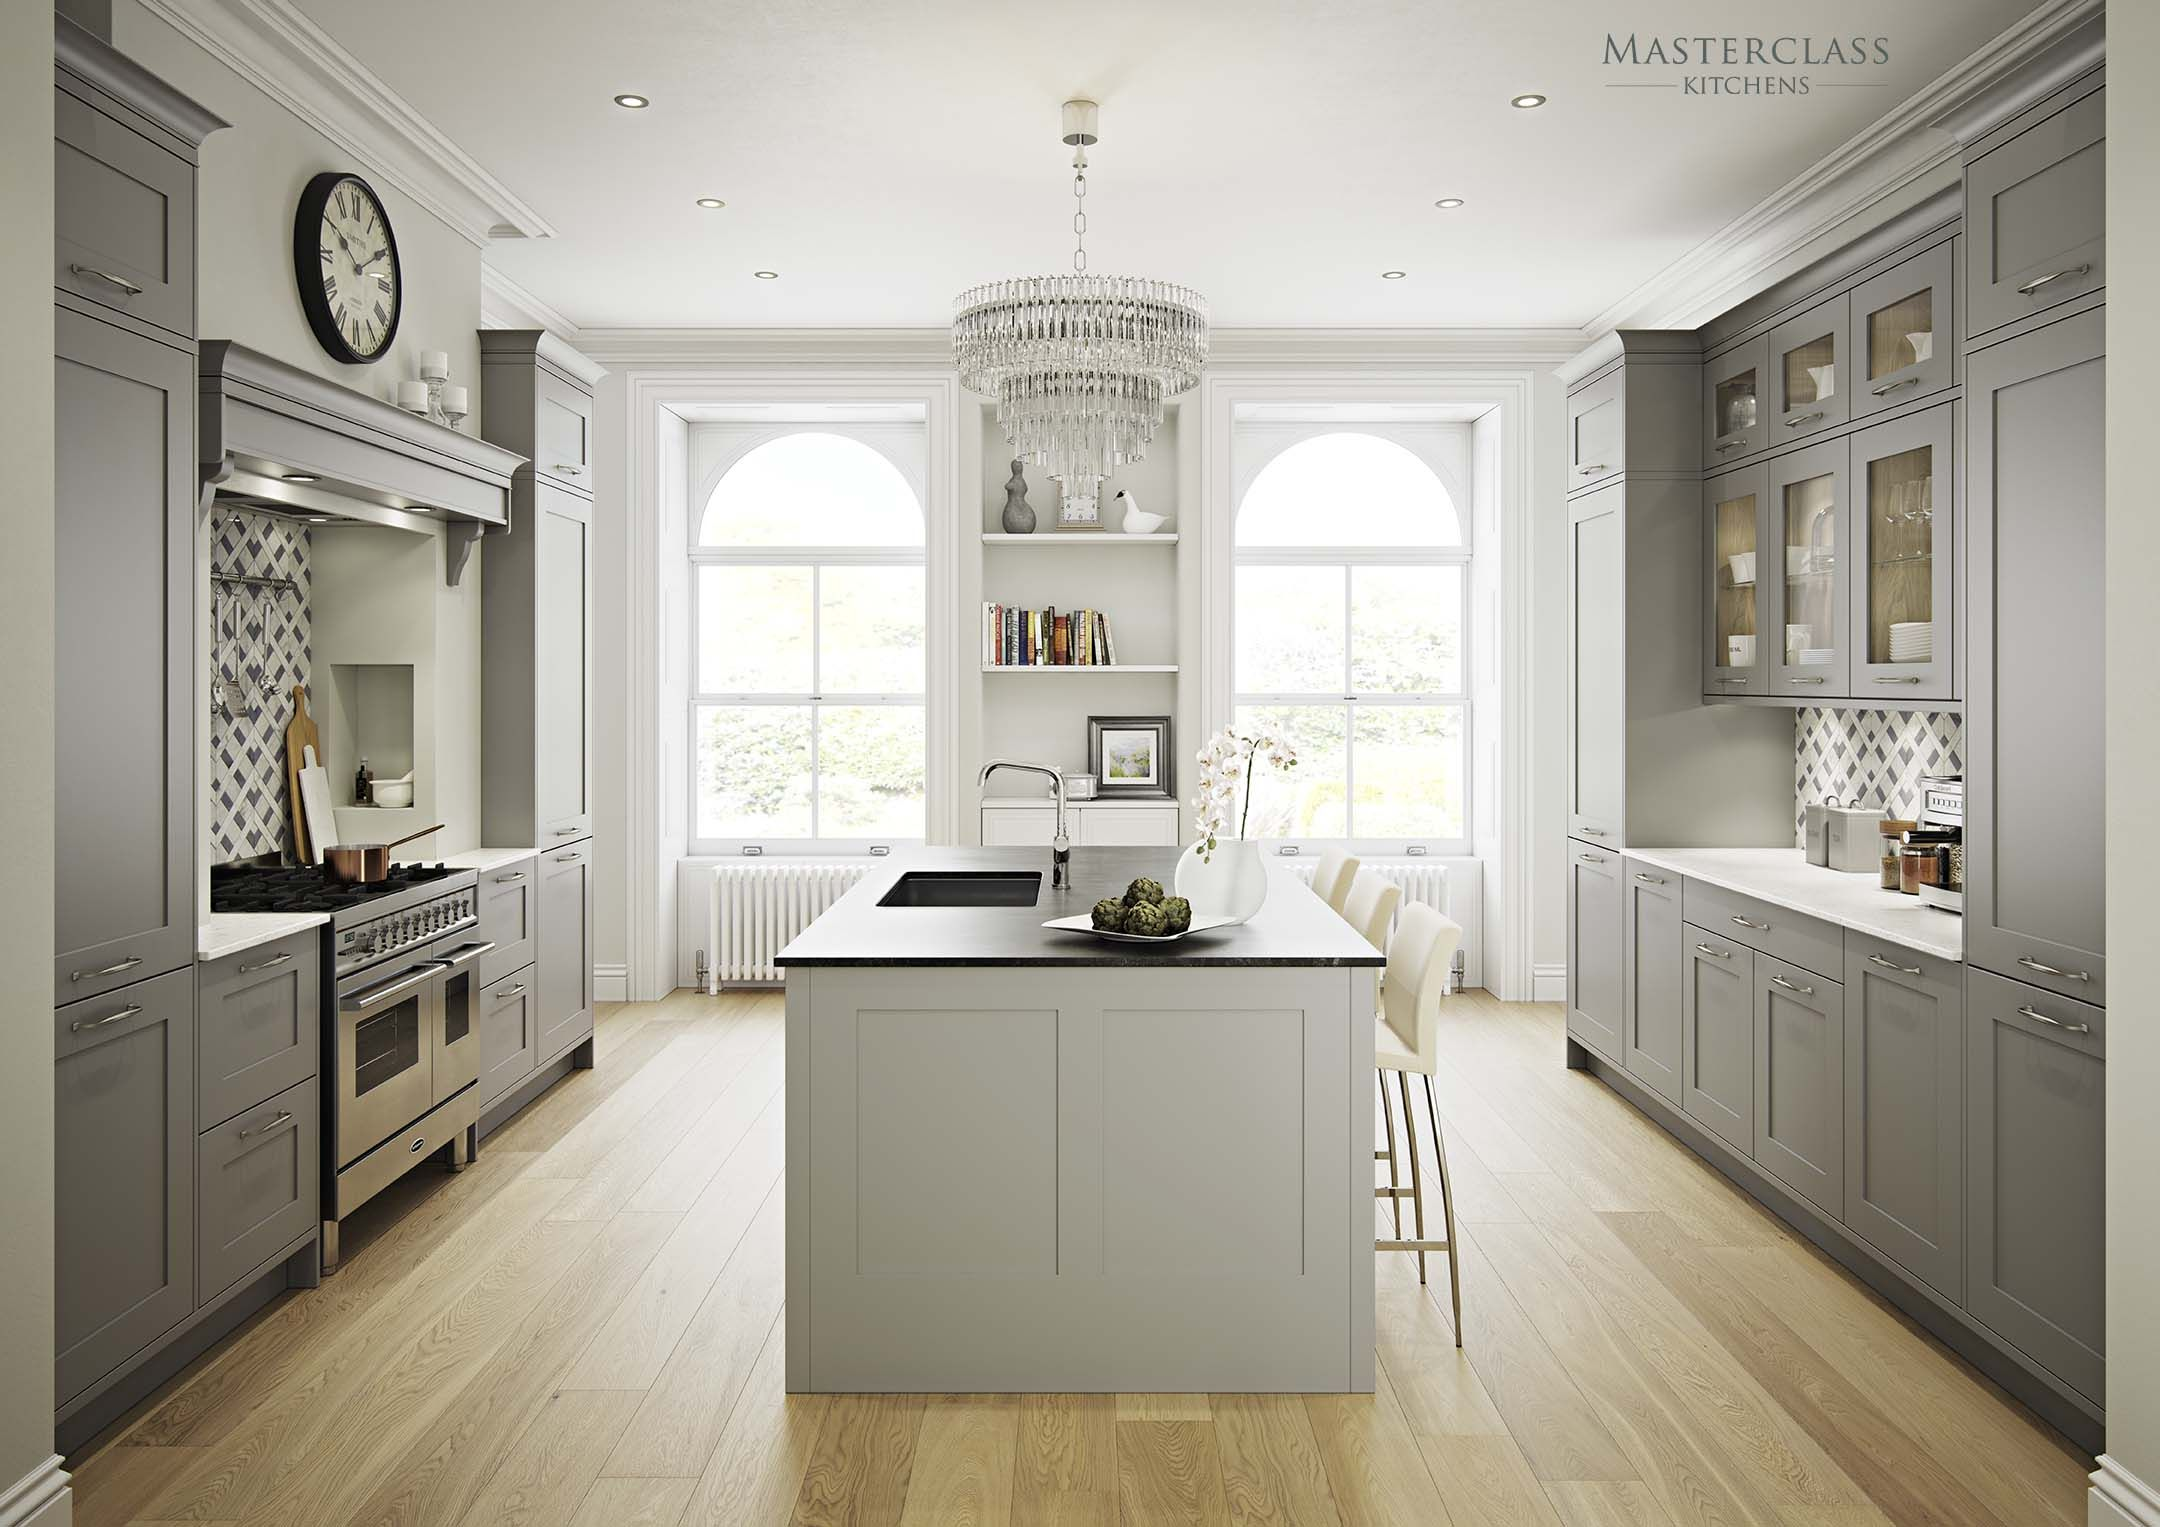 Shaker Kitchen Cabinets Marlborough In Light Grey And Dust Grey British Kitchen Design Traditional Kitchen Design Kitchen Design